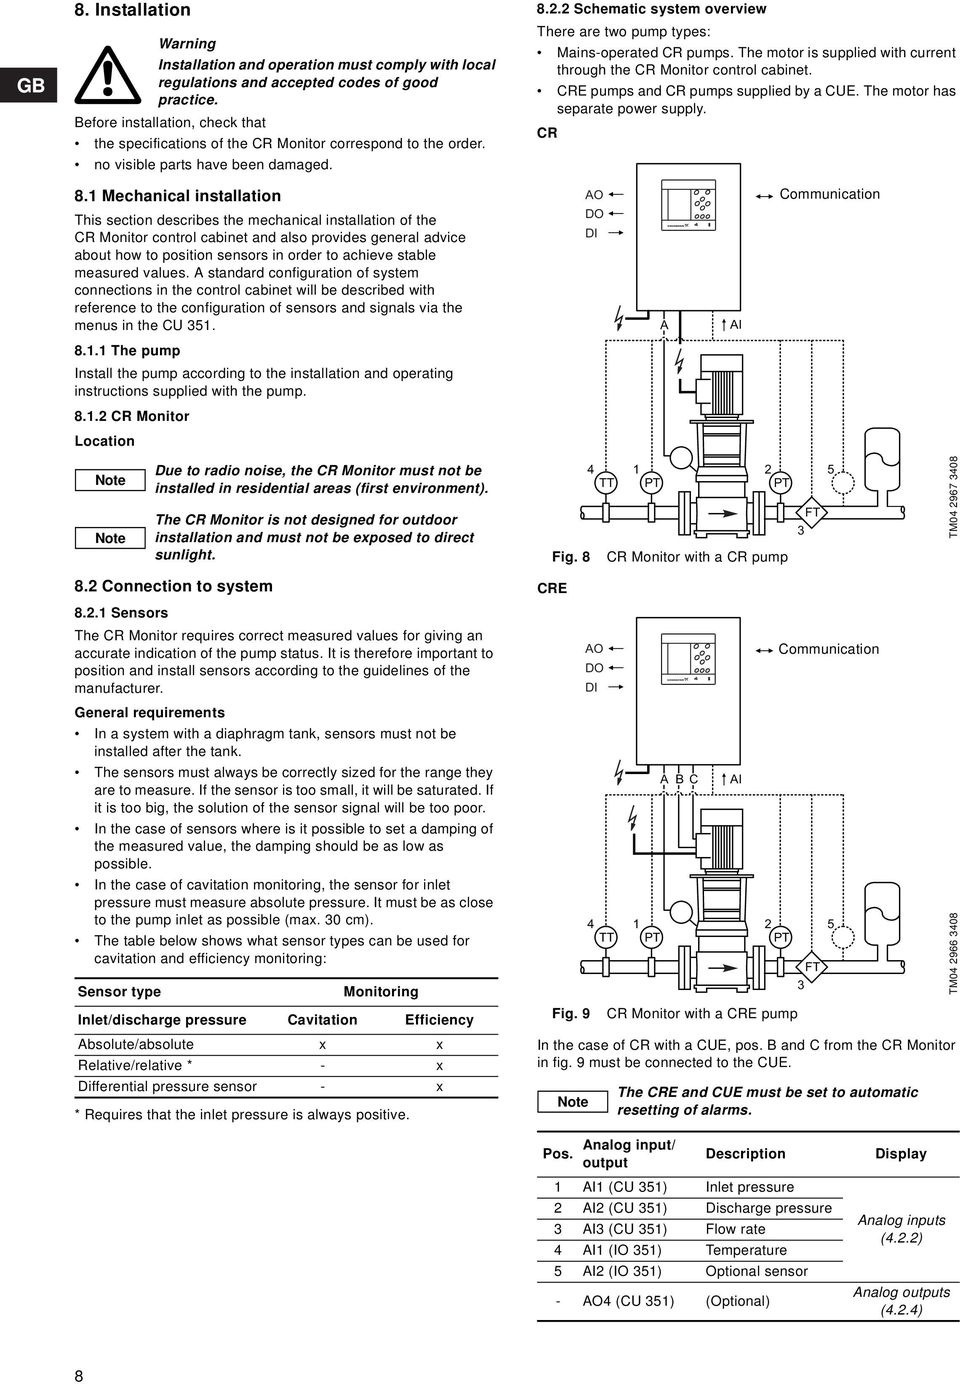 2 Schematic system overview There are two pump types: Mains-operated CR pumps. The motor is supplied with current through the CR Monitor control cabinet. CRE pumps and CR pumps supplied by a CUE.